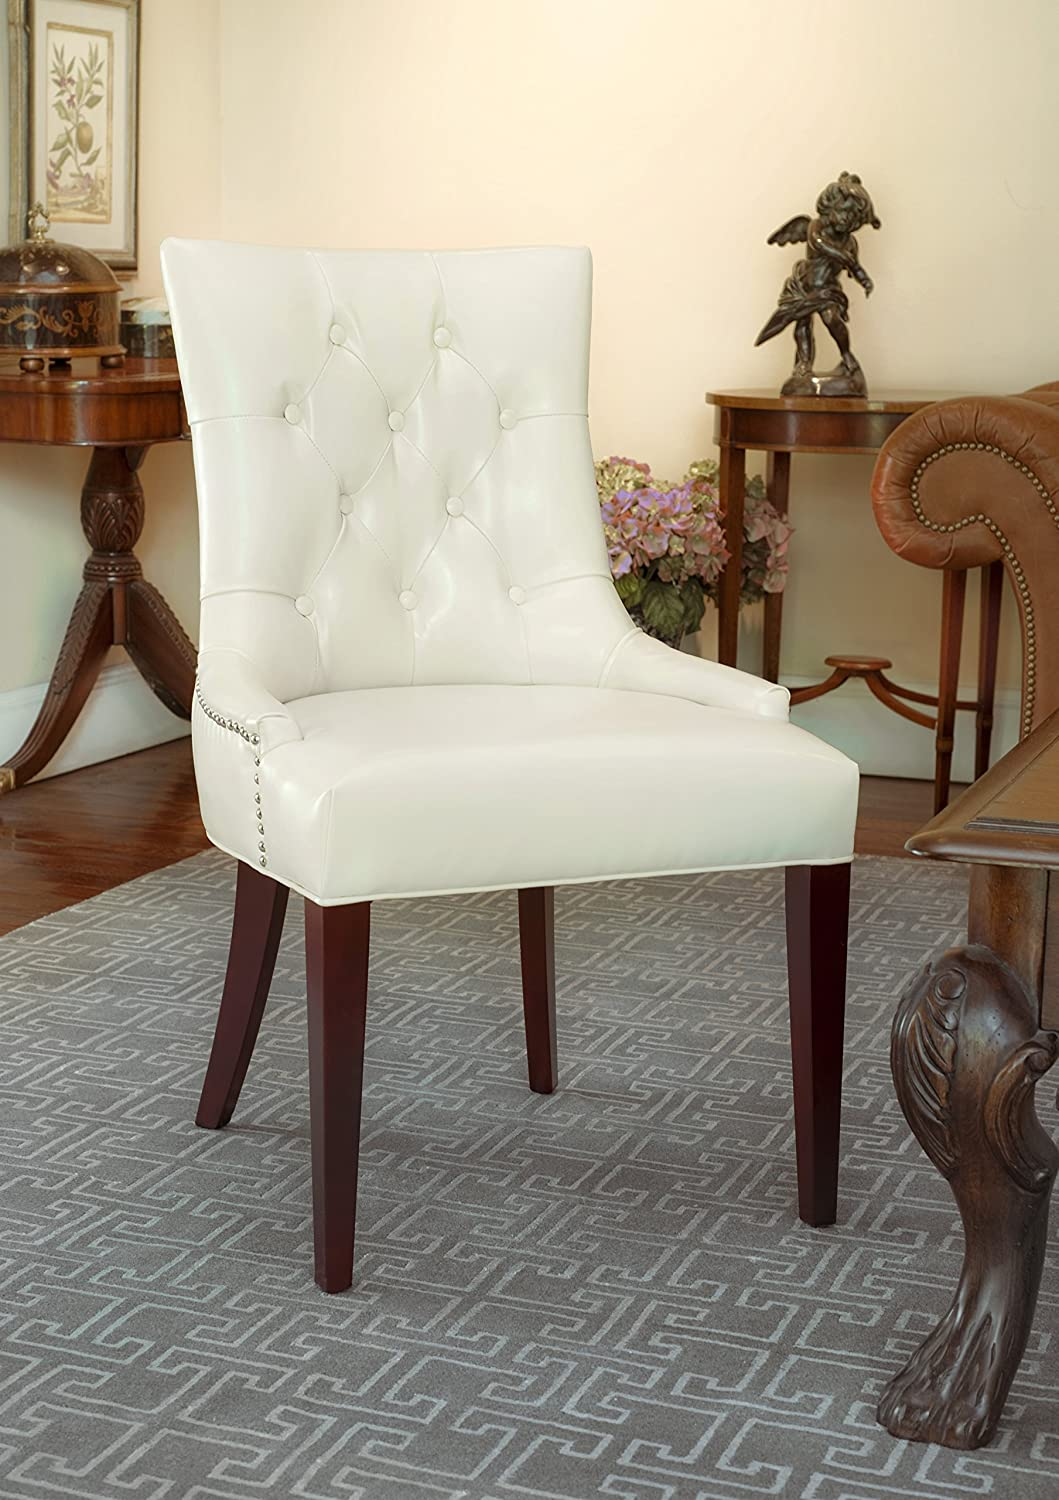 Safavieh Mercer Collection Erica Leather Button-Tufted Side Chair, Cream